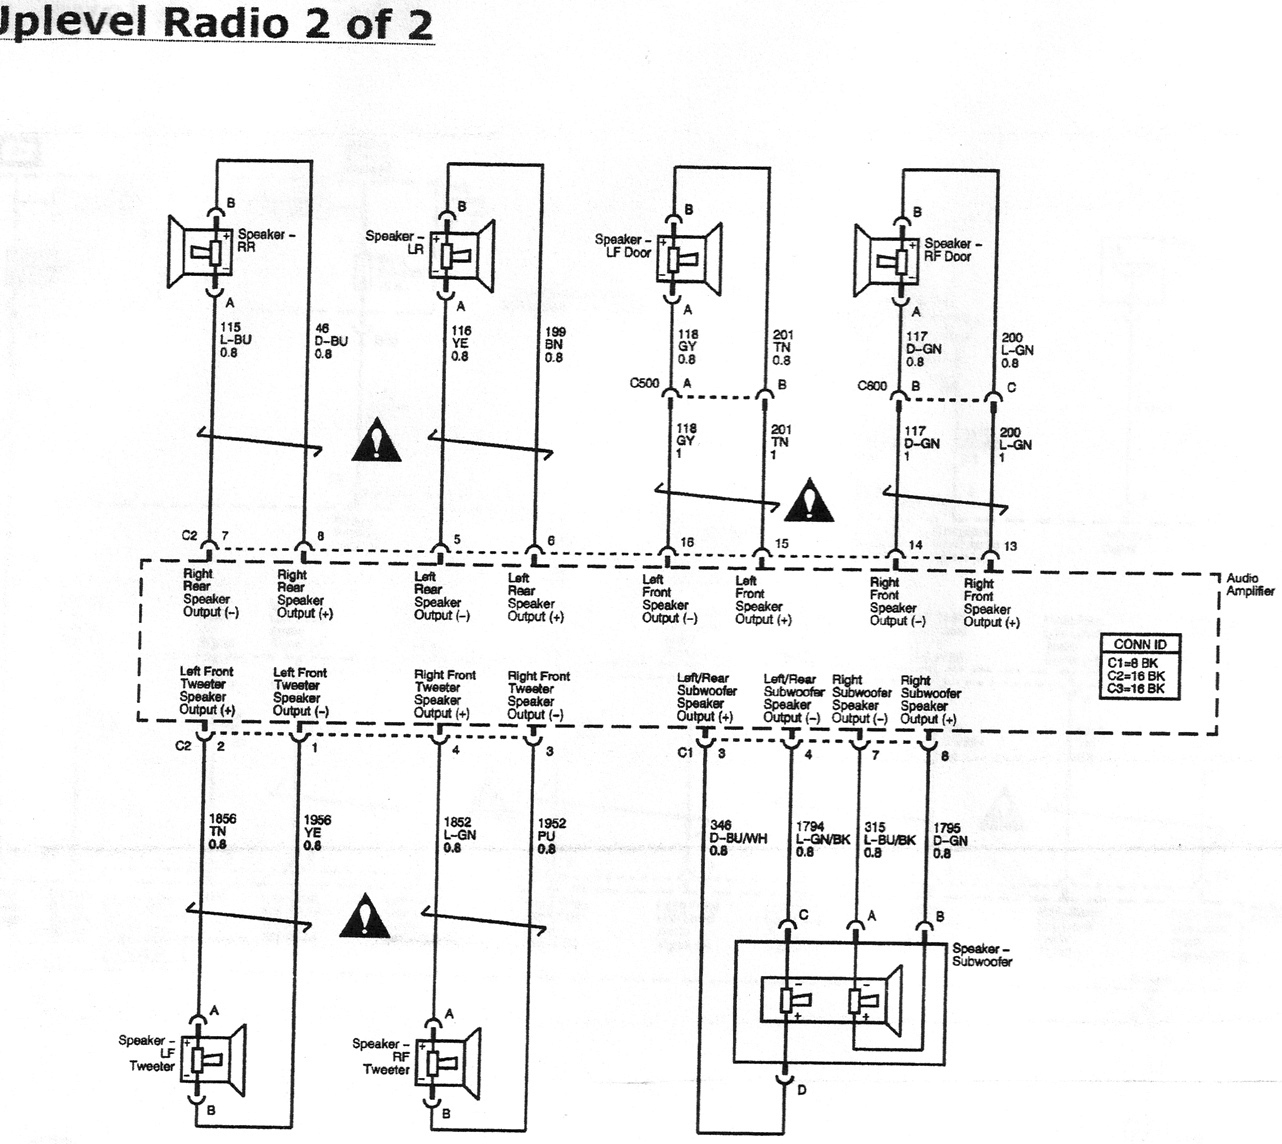 29802 monsoon amp speaker replacement monsoon_wiring_diagram_page_2 monsoon amp and speaker replacement saturn sky forums saturn firebird monsoon wiring diagram at nearapp.co